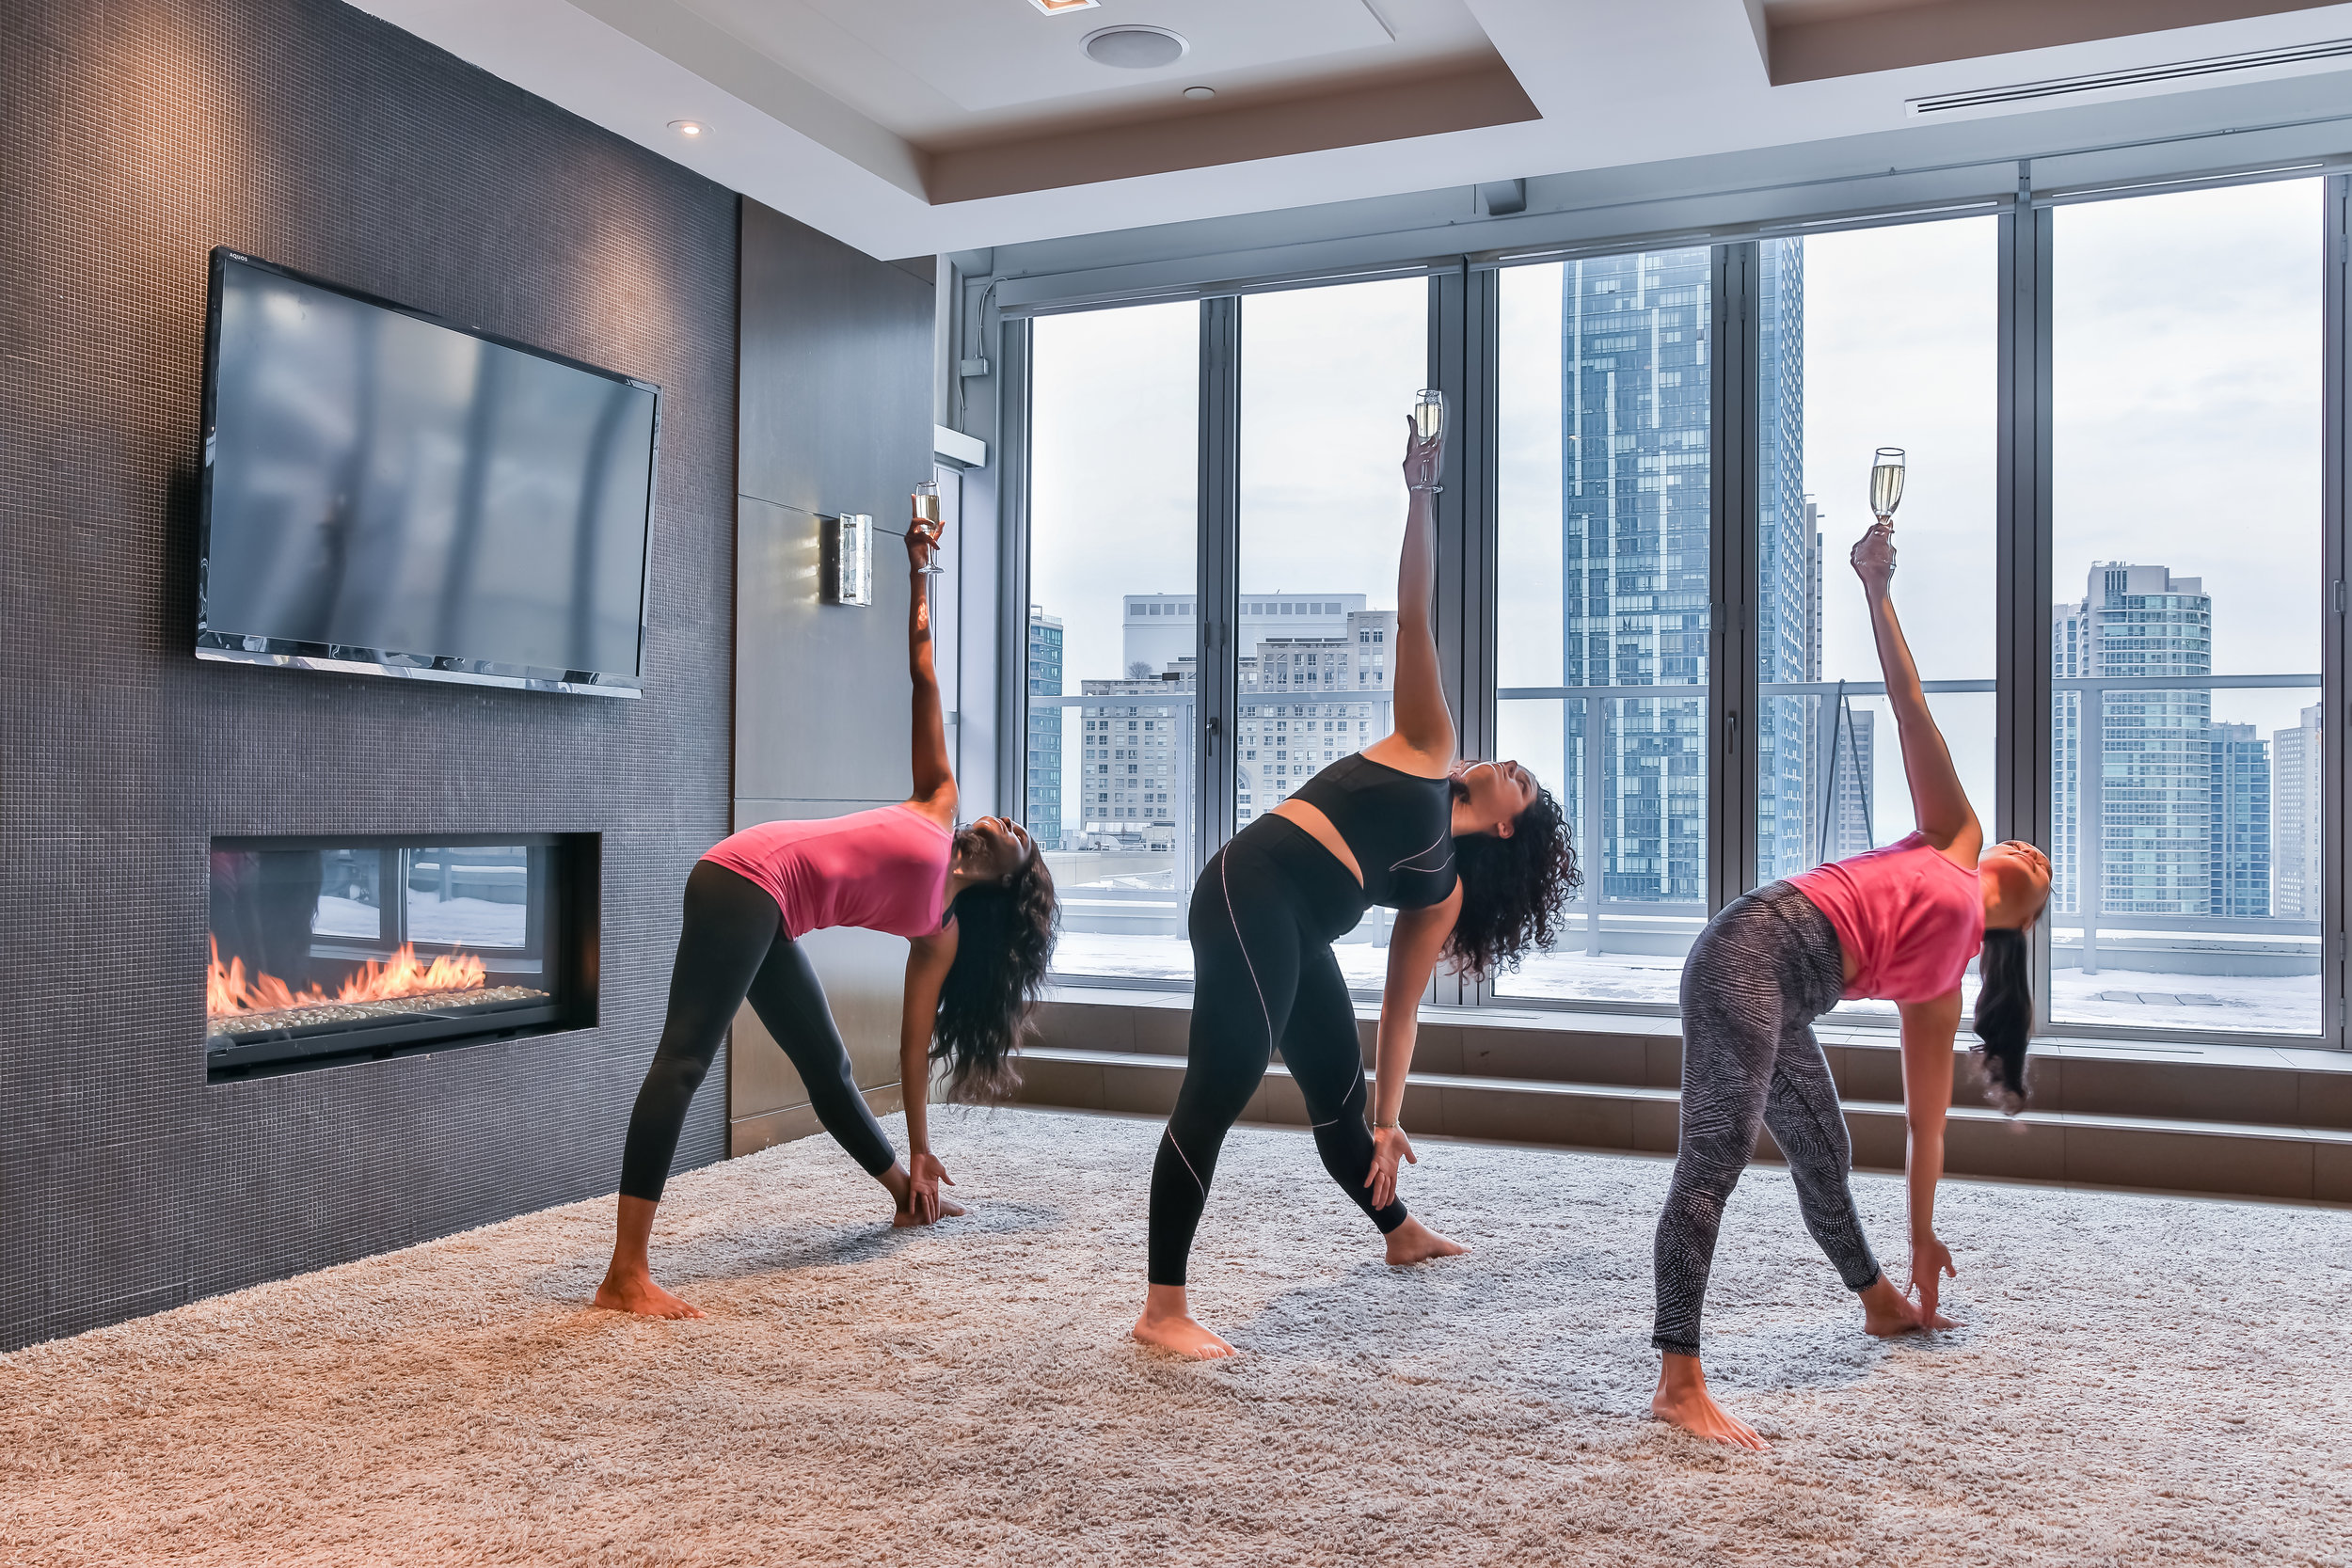 TNCB YOGA & CHAMPAGNE CLASS: - Yoga Class for up to 10 individuals - $2753 bottles of Champagne & delivery - $250Glassware & server for 1 hour - $75